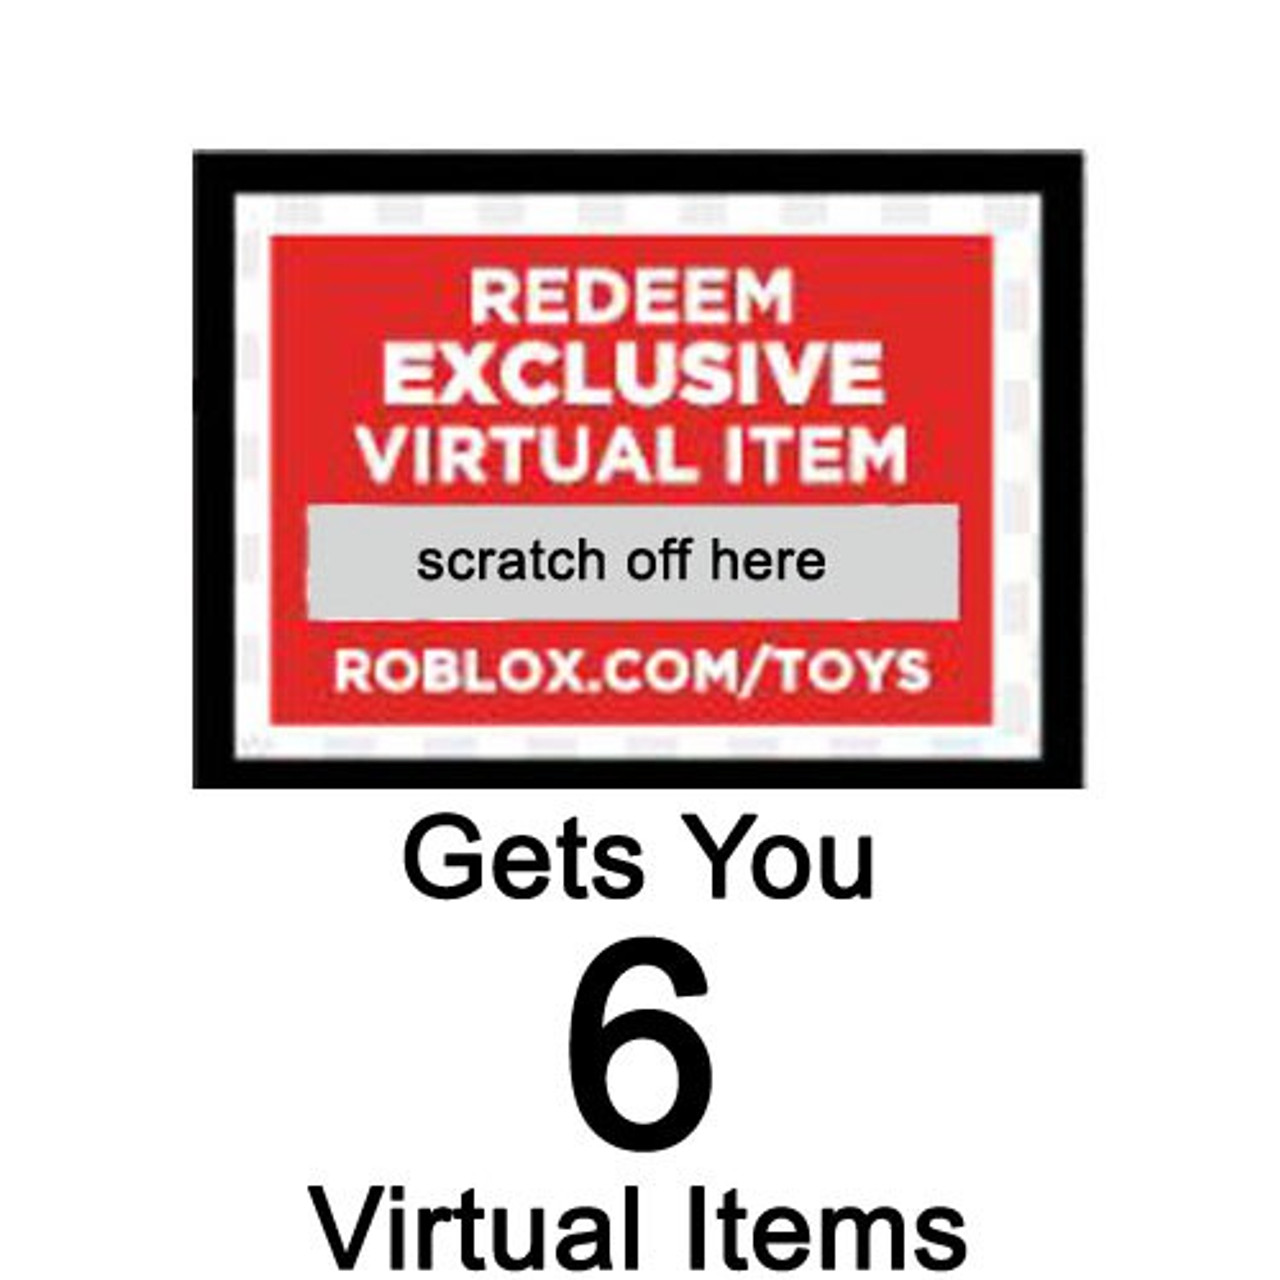 Roblox Redeem 6 Virtual Items Online Code 1 Code Gets You 6 Items